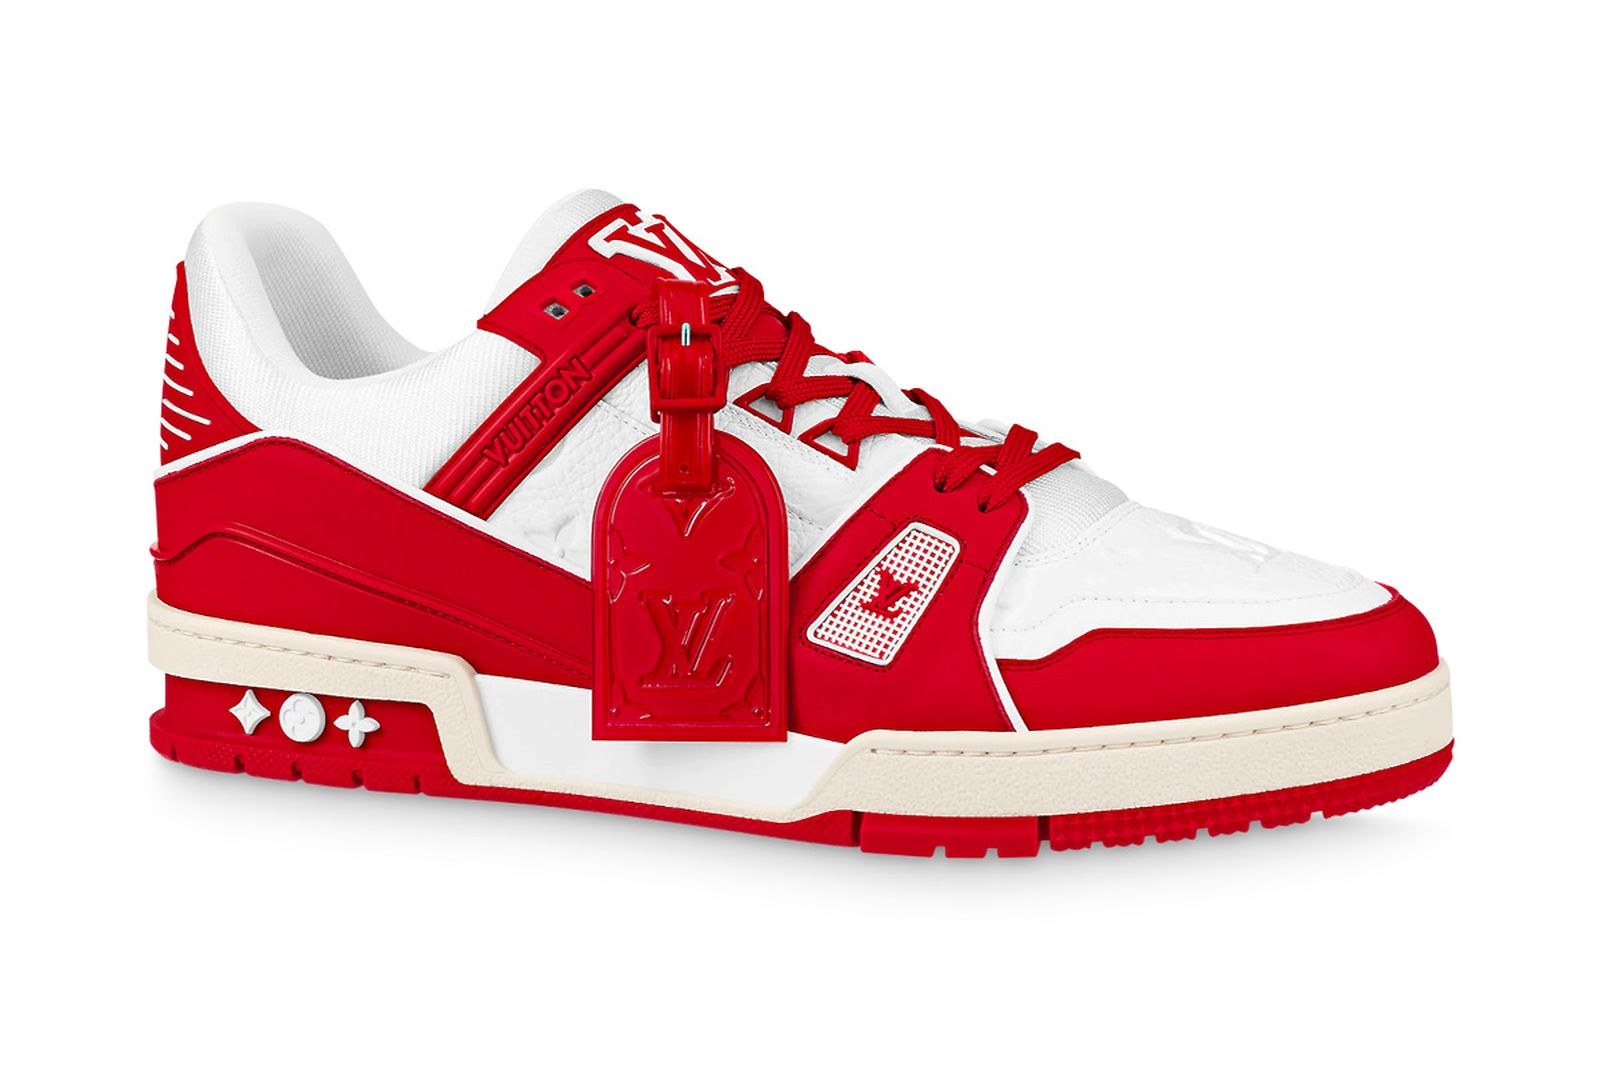 virgil-abloh-louis-vuitton-1-trainer-sothebys-auction-03